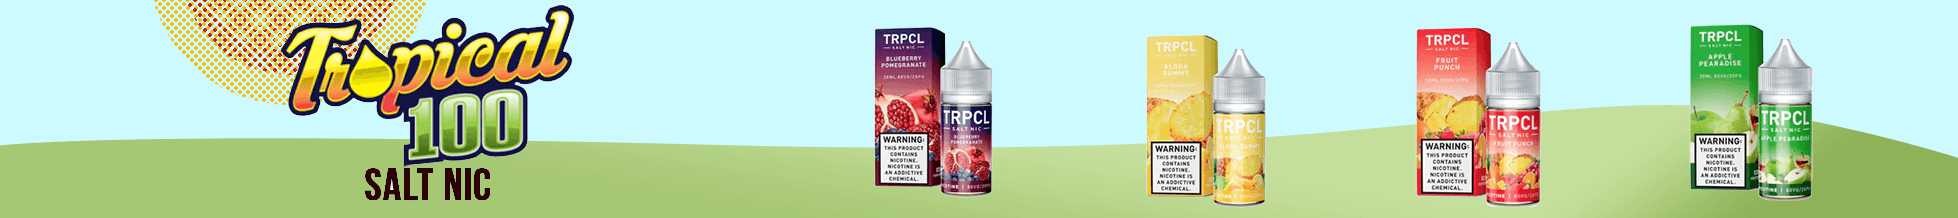 tropical100-salts-category-banner.png